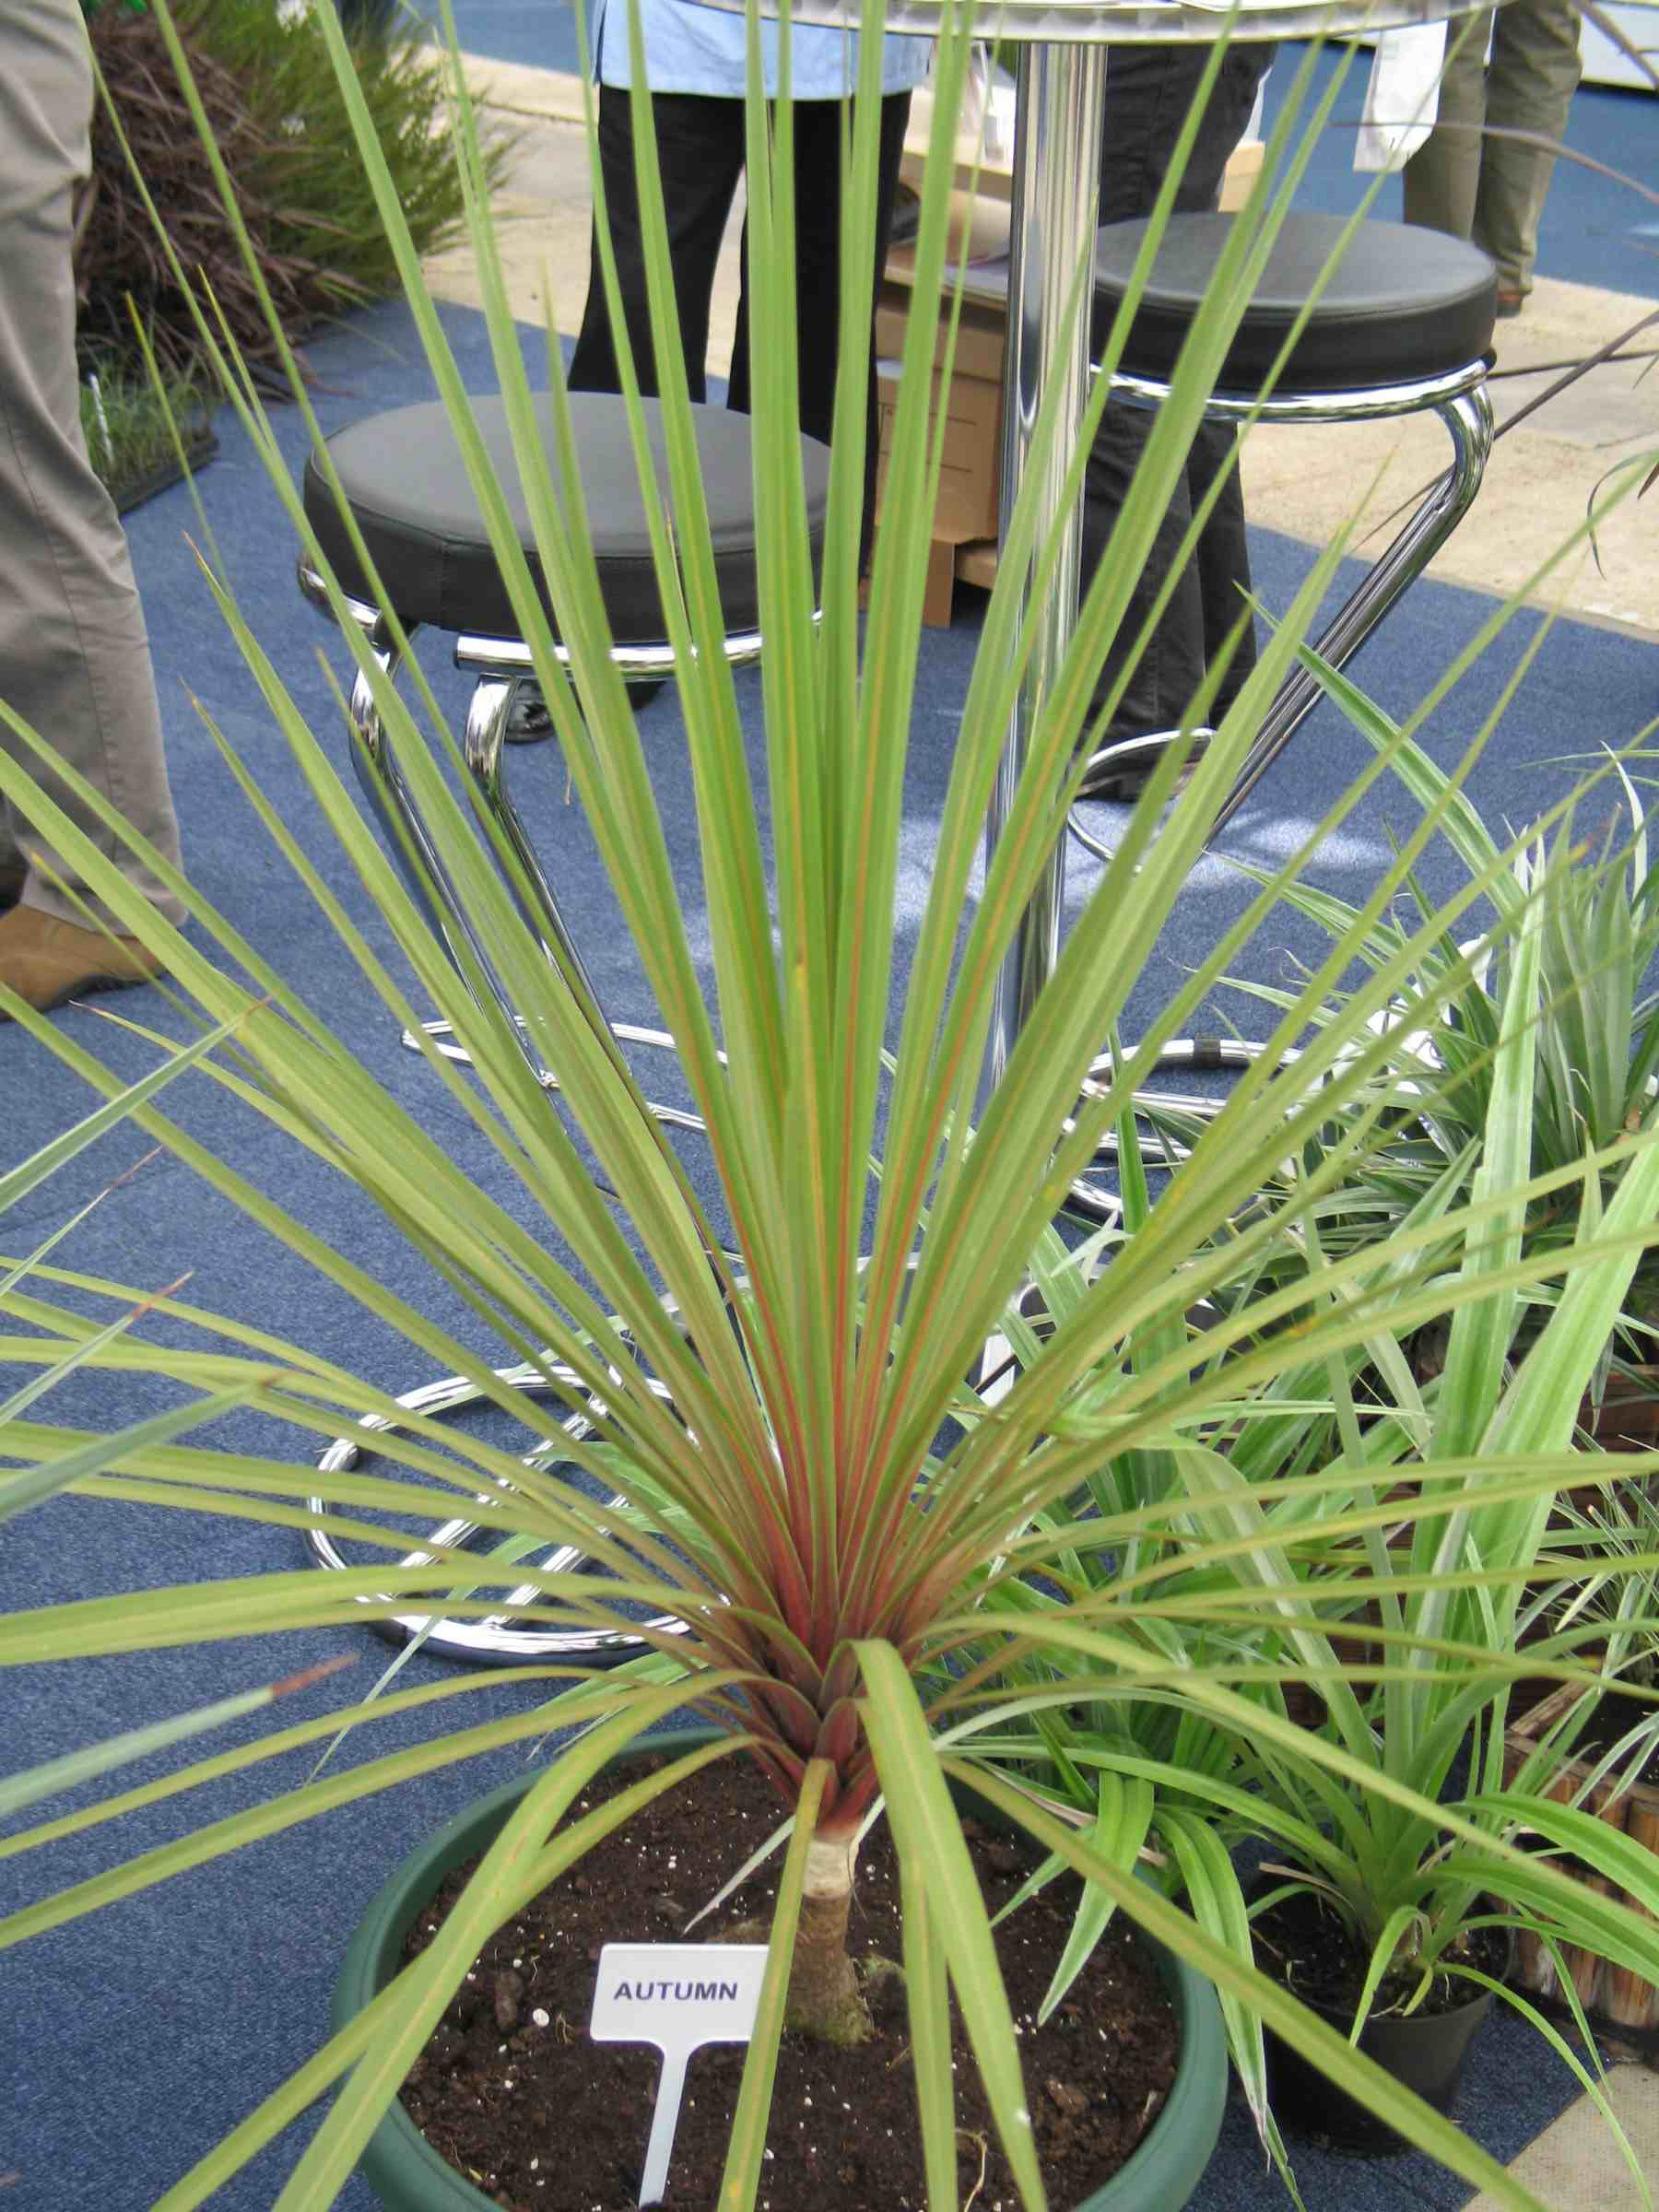 Cordyline australis Autumn